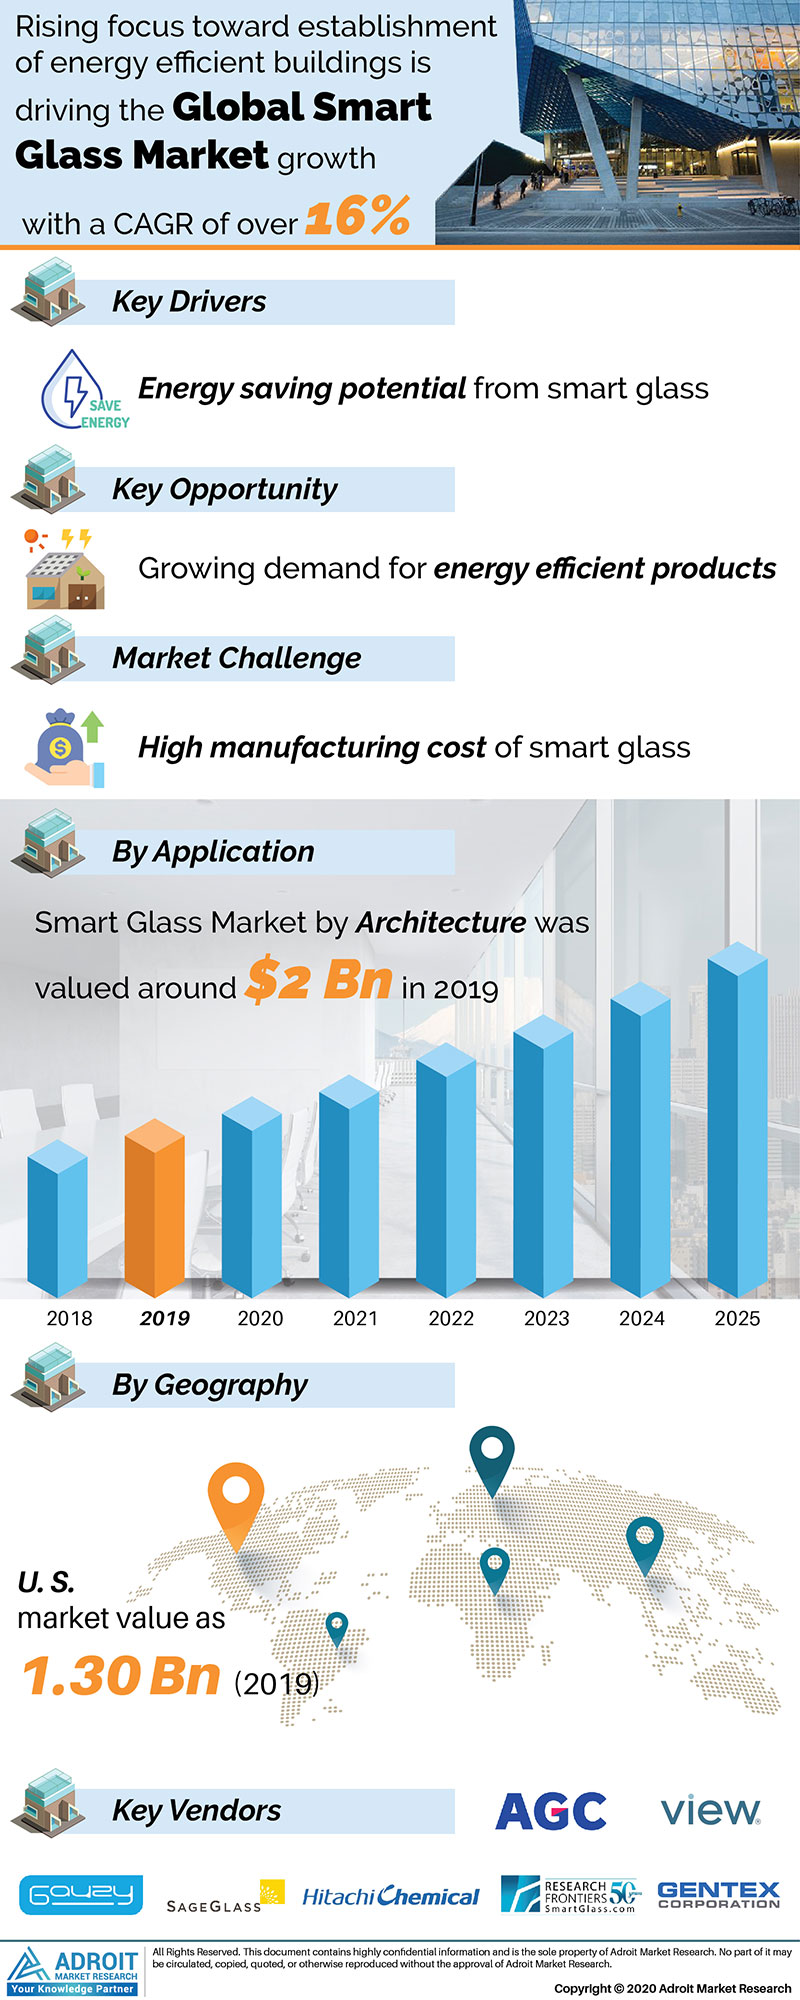 Global Smart Glass Market Size 2018 By Product Type, Formulation, End-user, Region and Forecast 2019 to 2025